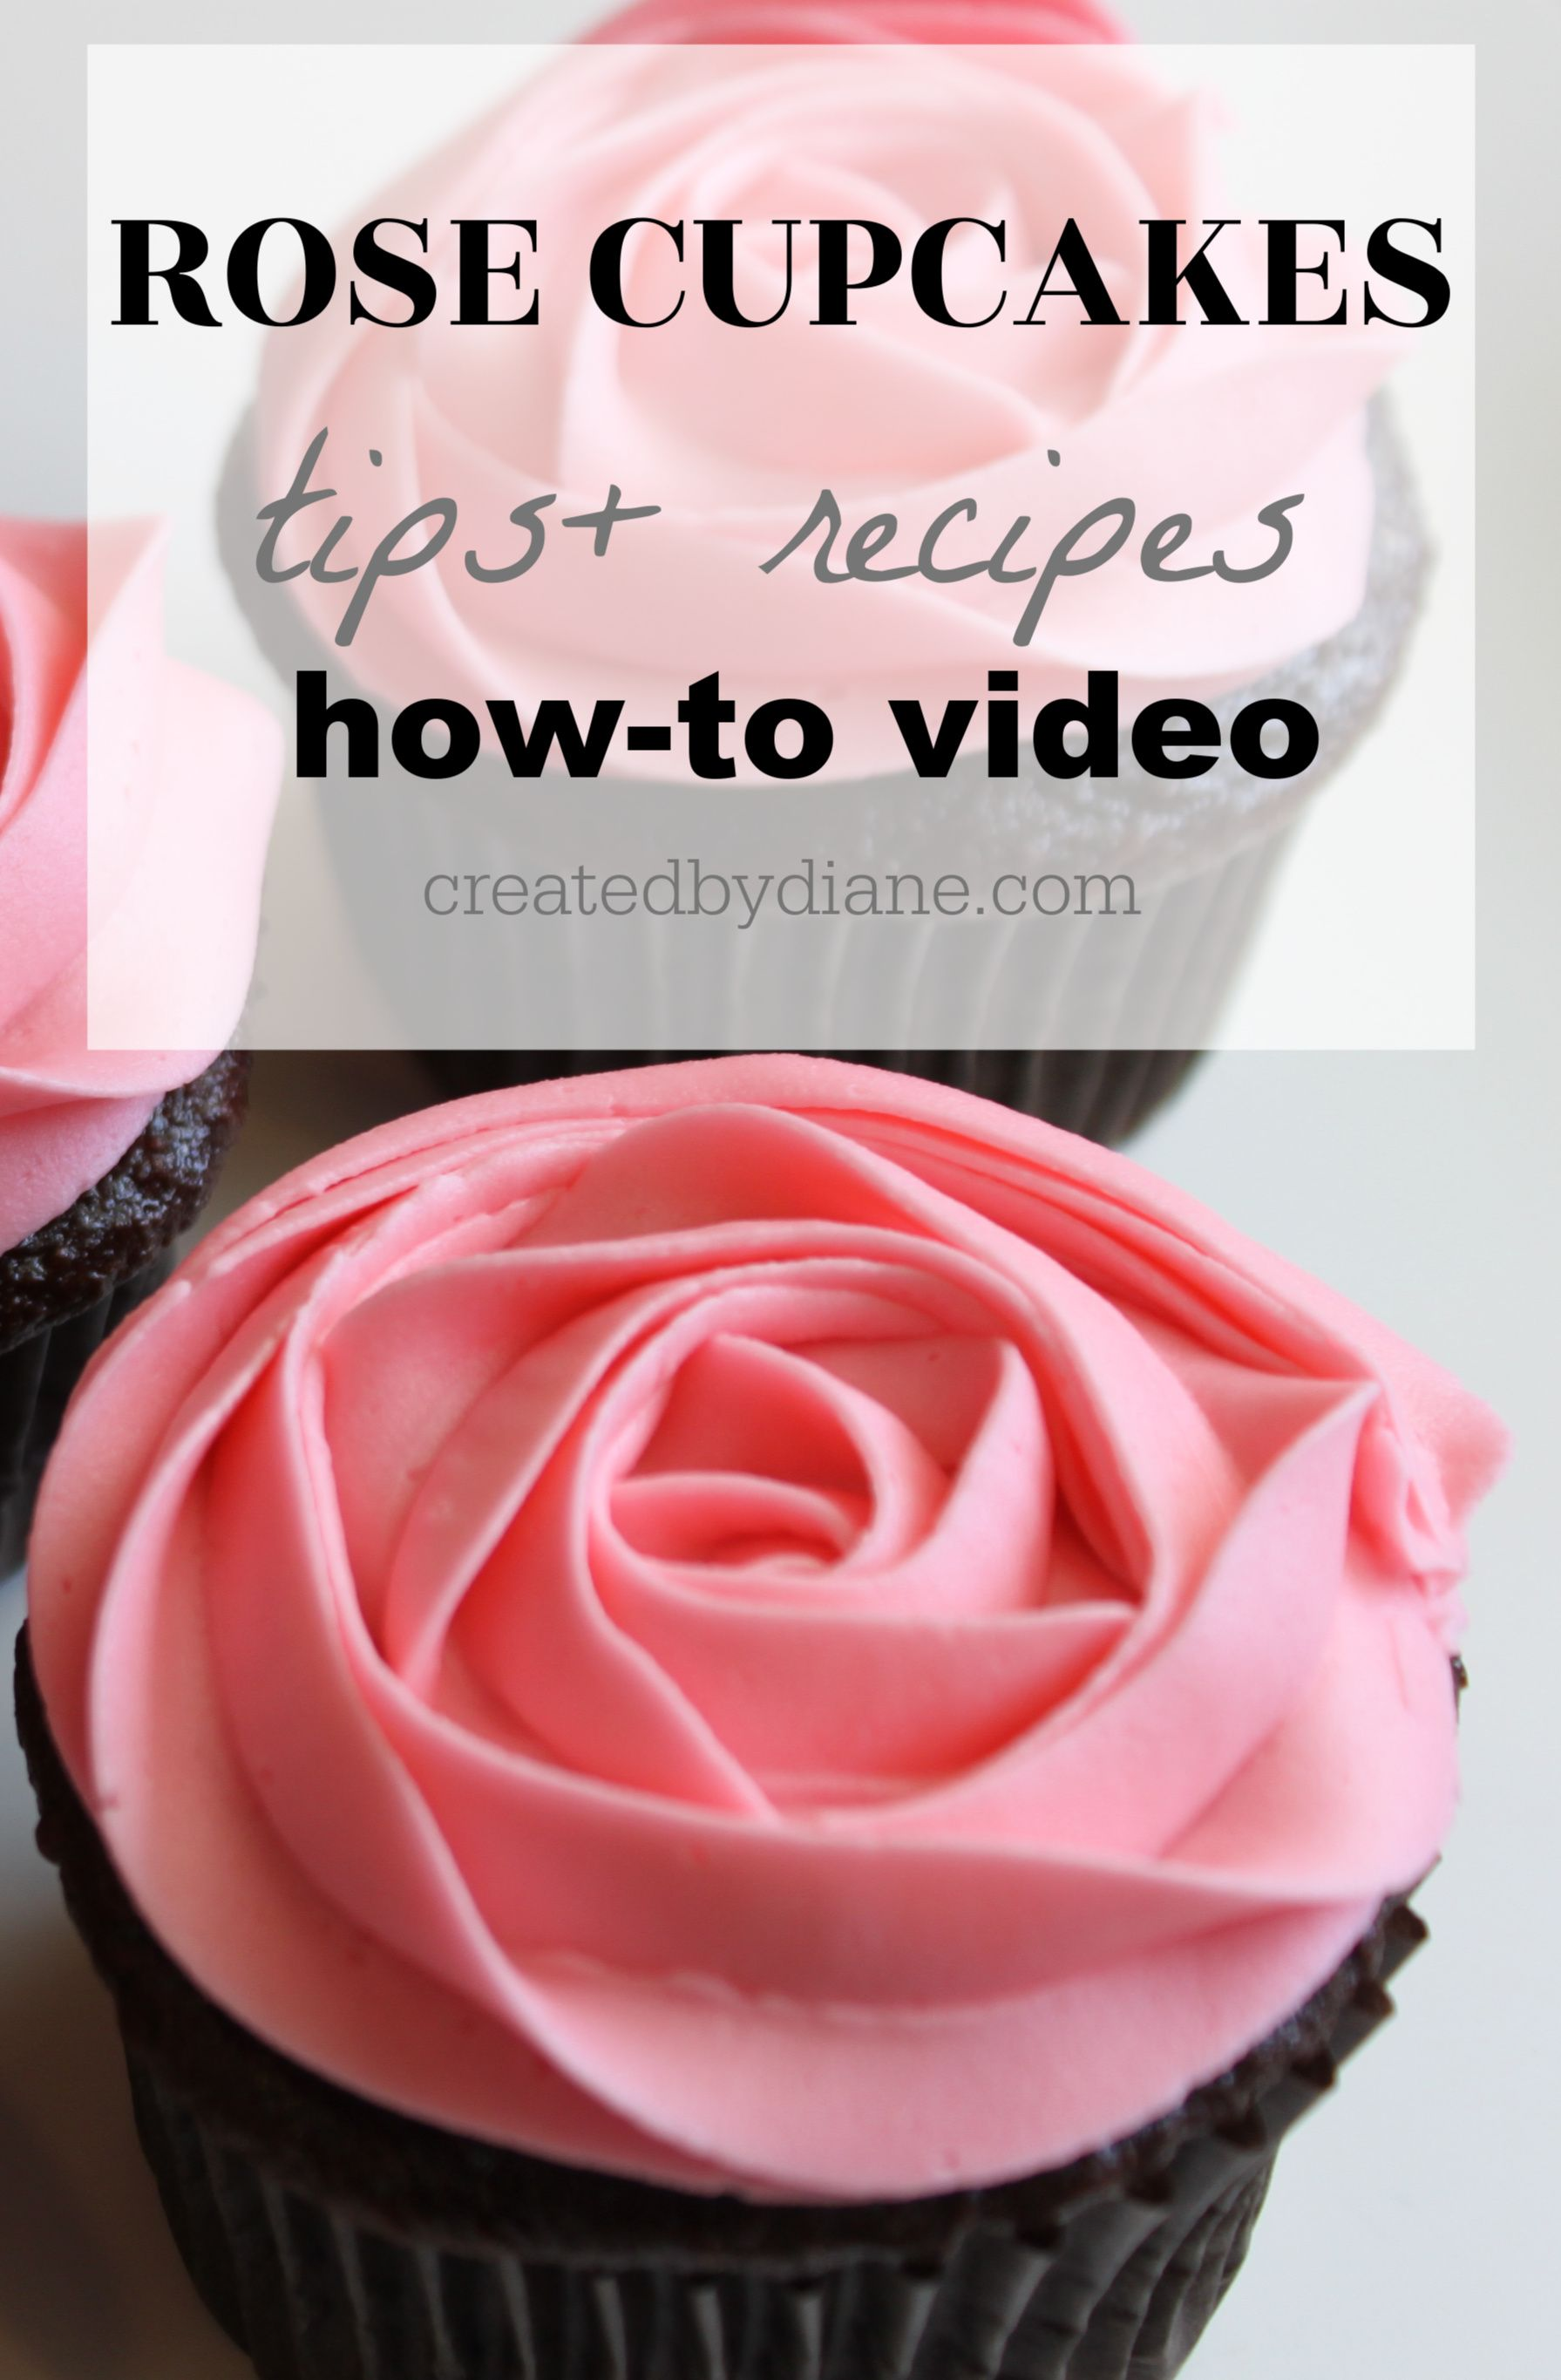 Tips Recipes And How To Video Createdbydiane Com In 2020 Rose